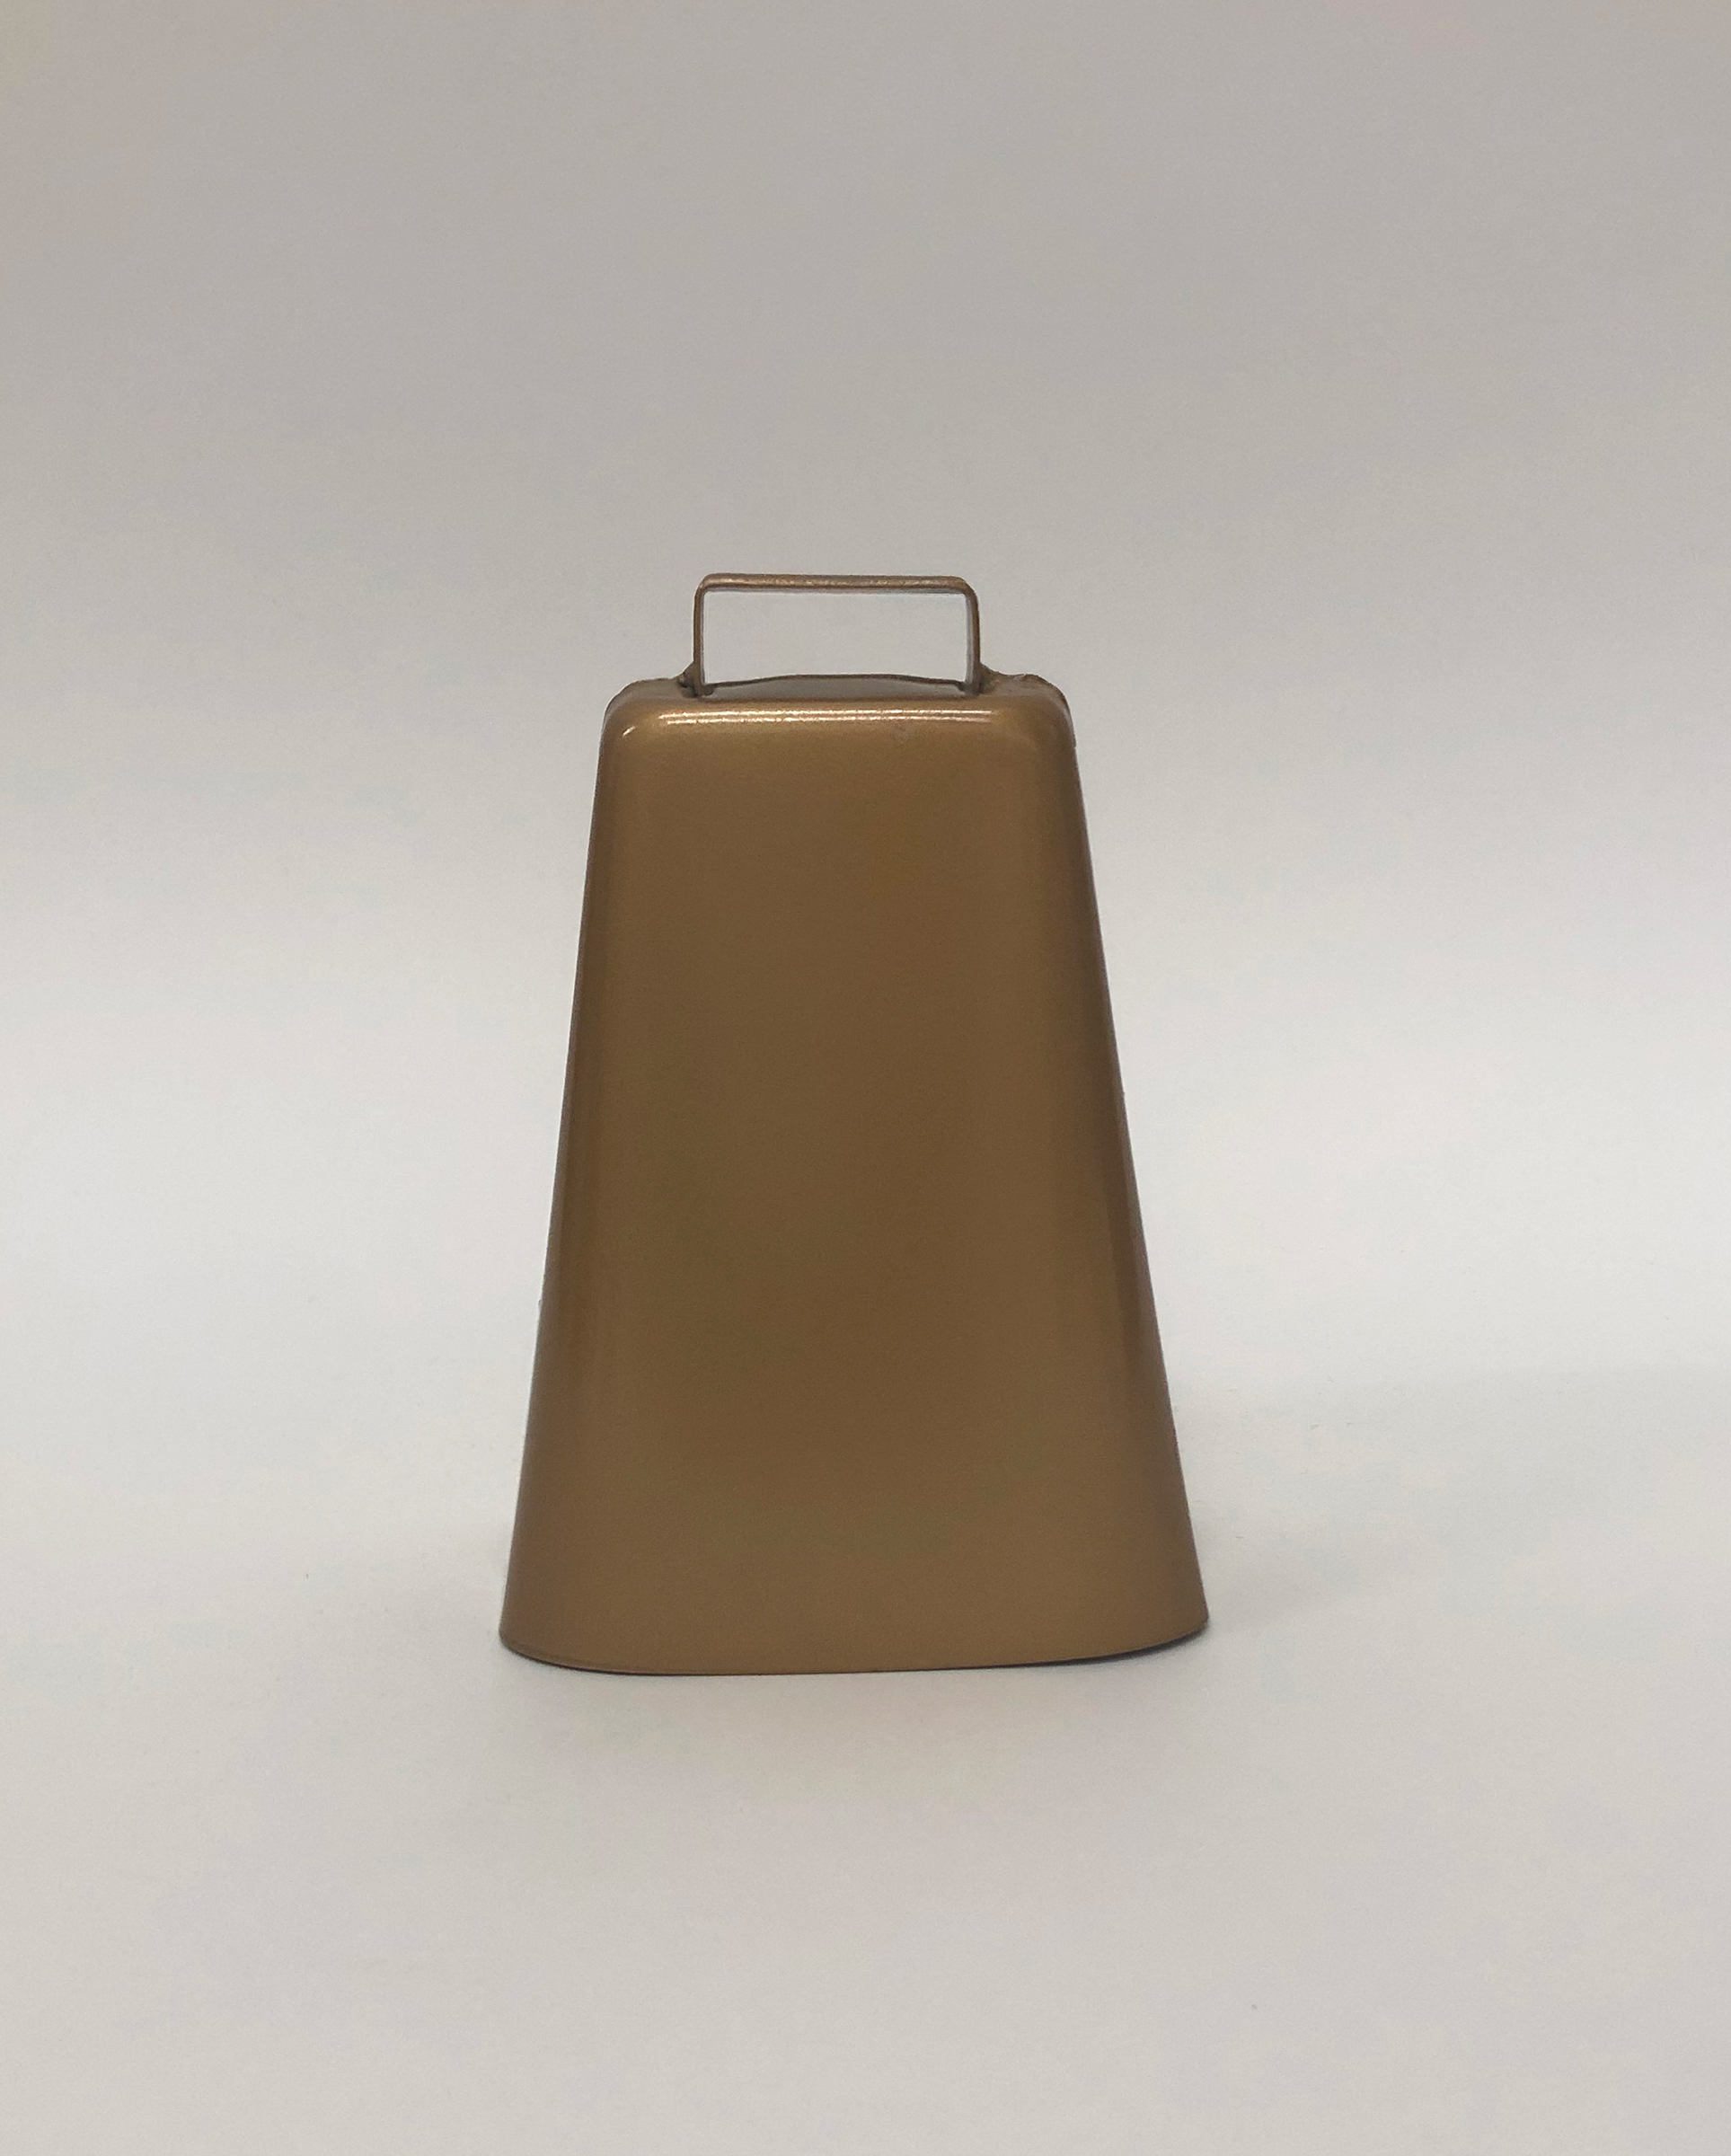 The cowbell that staffers at the Samaritan's Purse emergency field hospital in Central Park would ring every time they'd discharge a patient